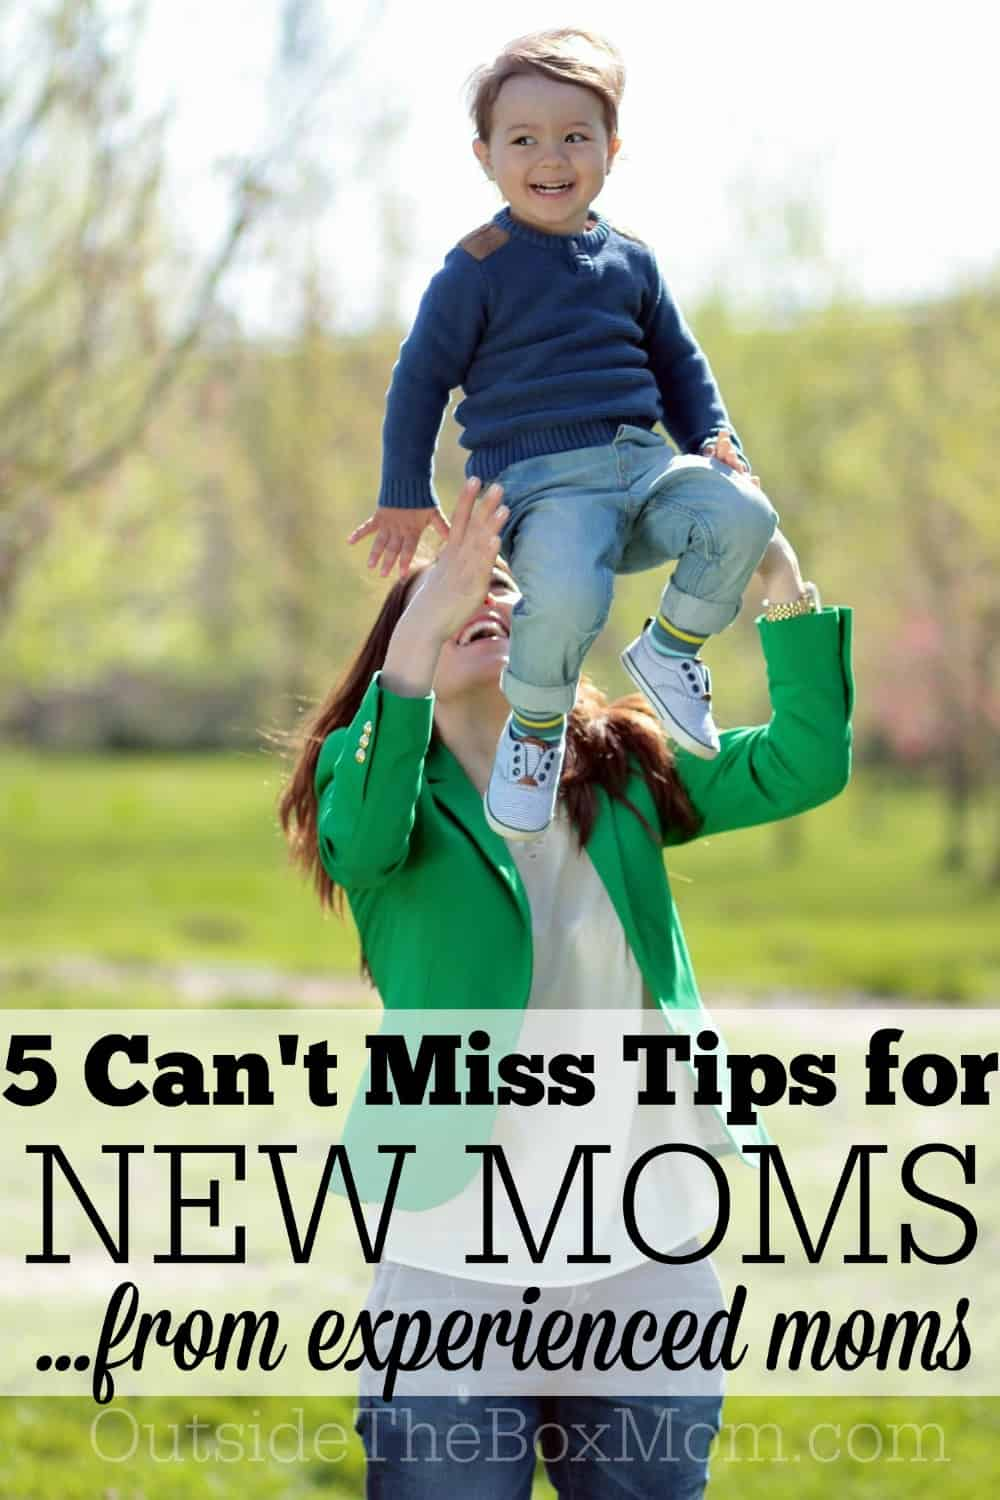 Are you a new mom who wishes your baby came with a manual? I'm here to share five tips this experienced mom would give myself as a new mom.